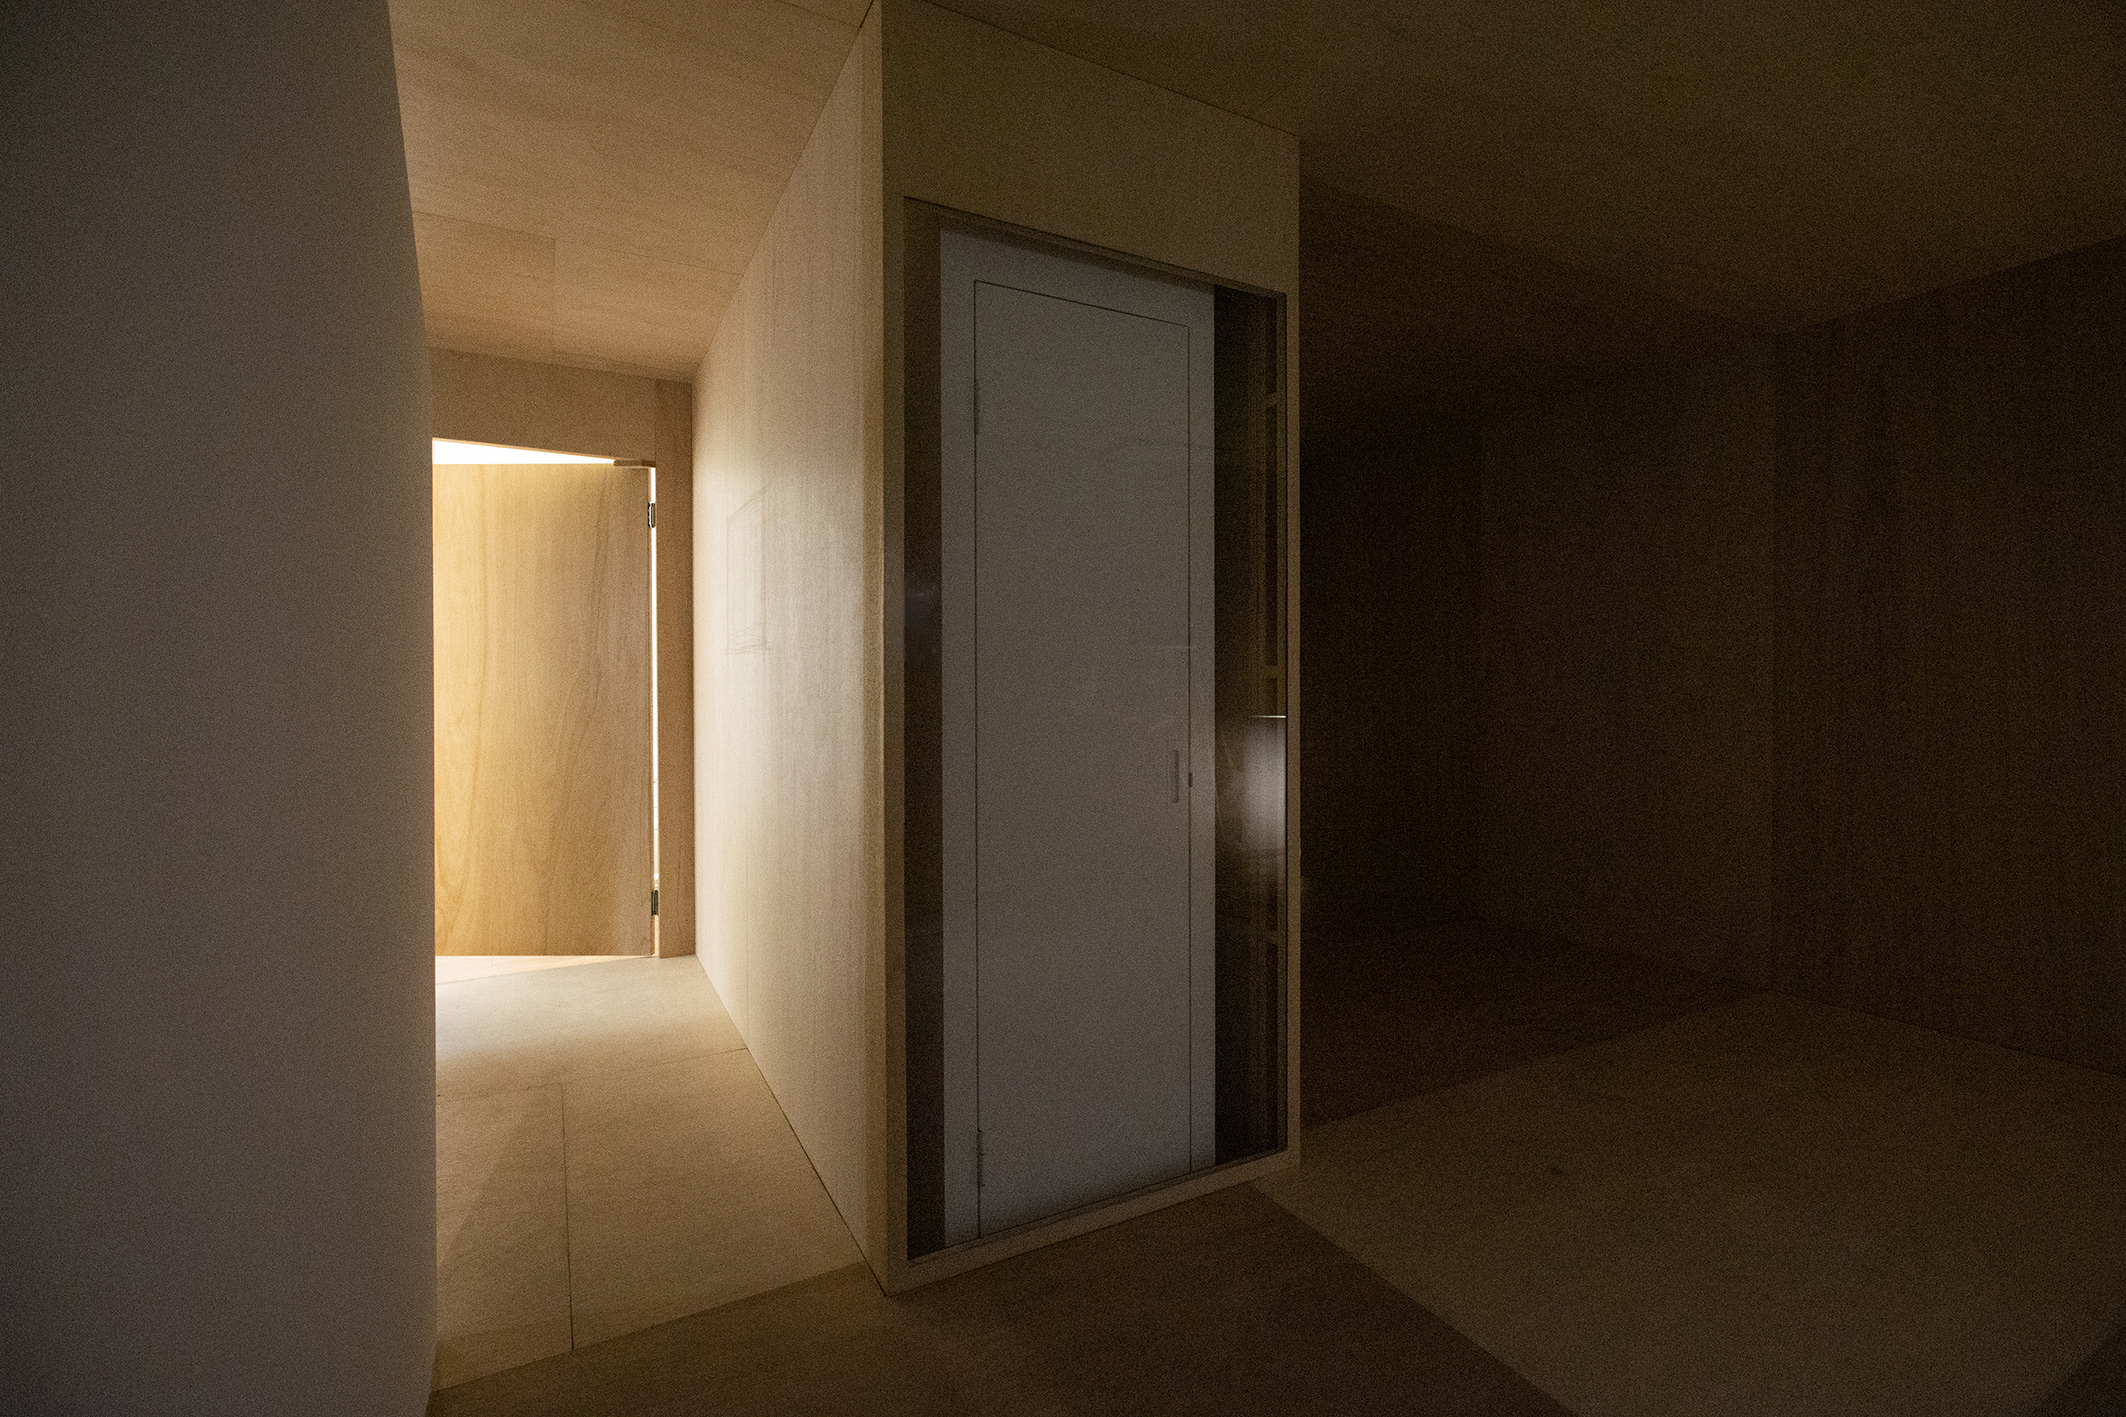 Gallery's Storage, Site specific, Dimensions variable, 2021